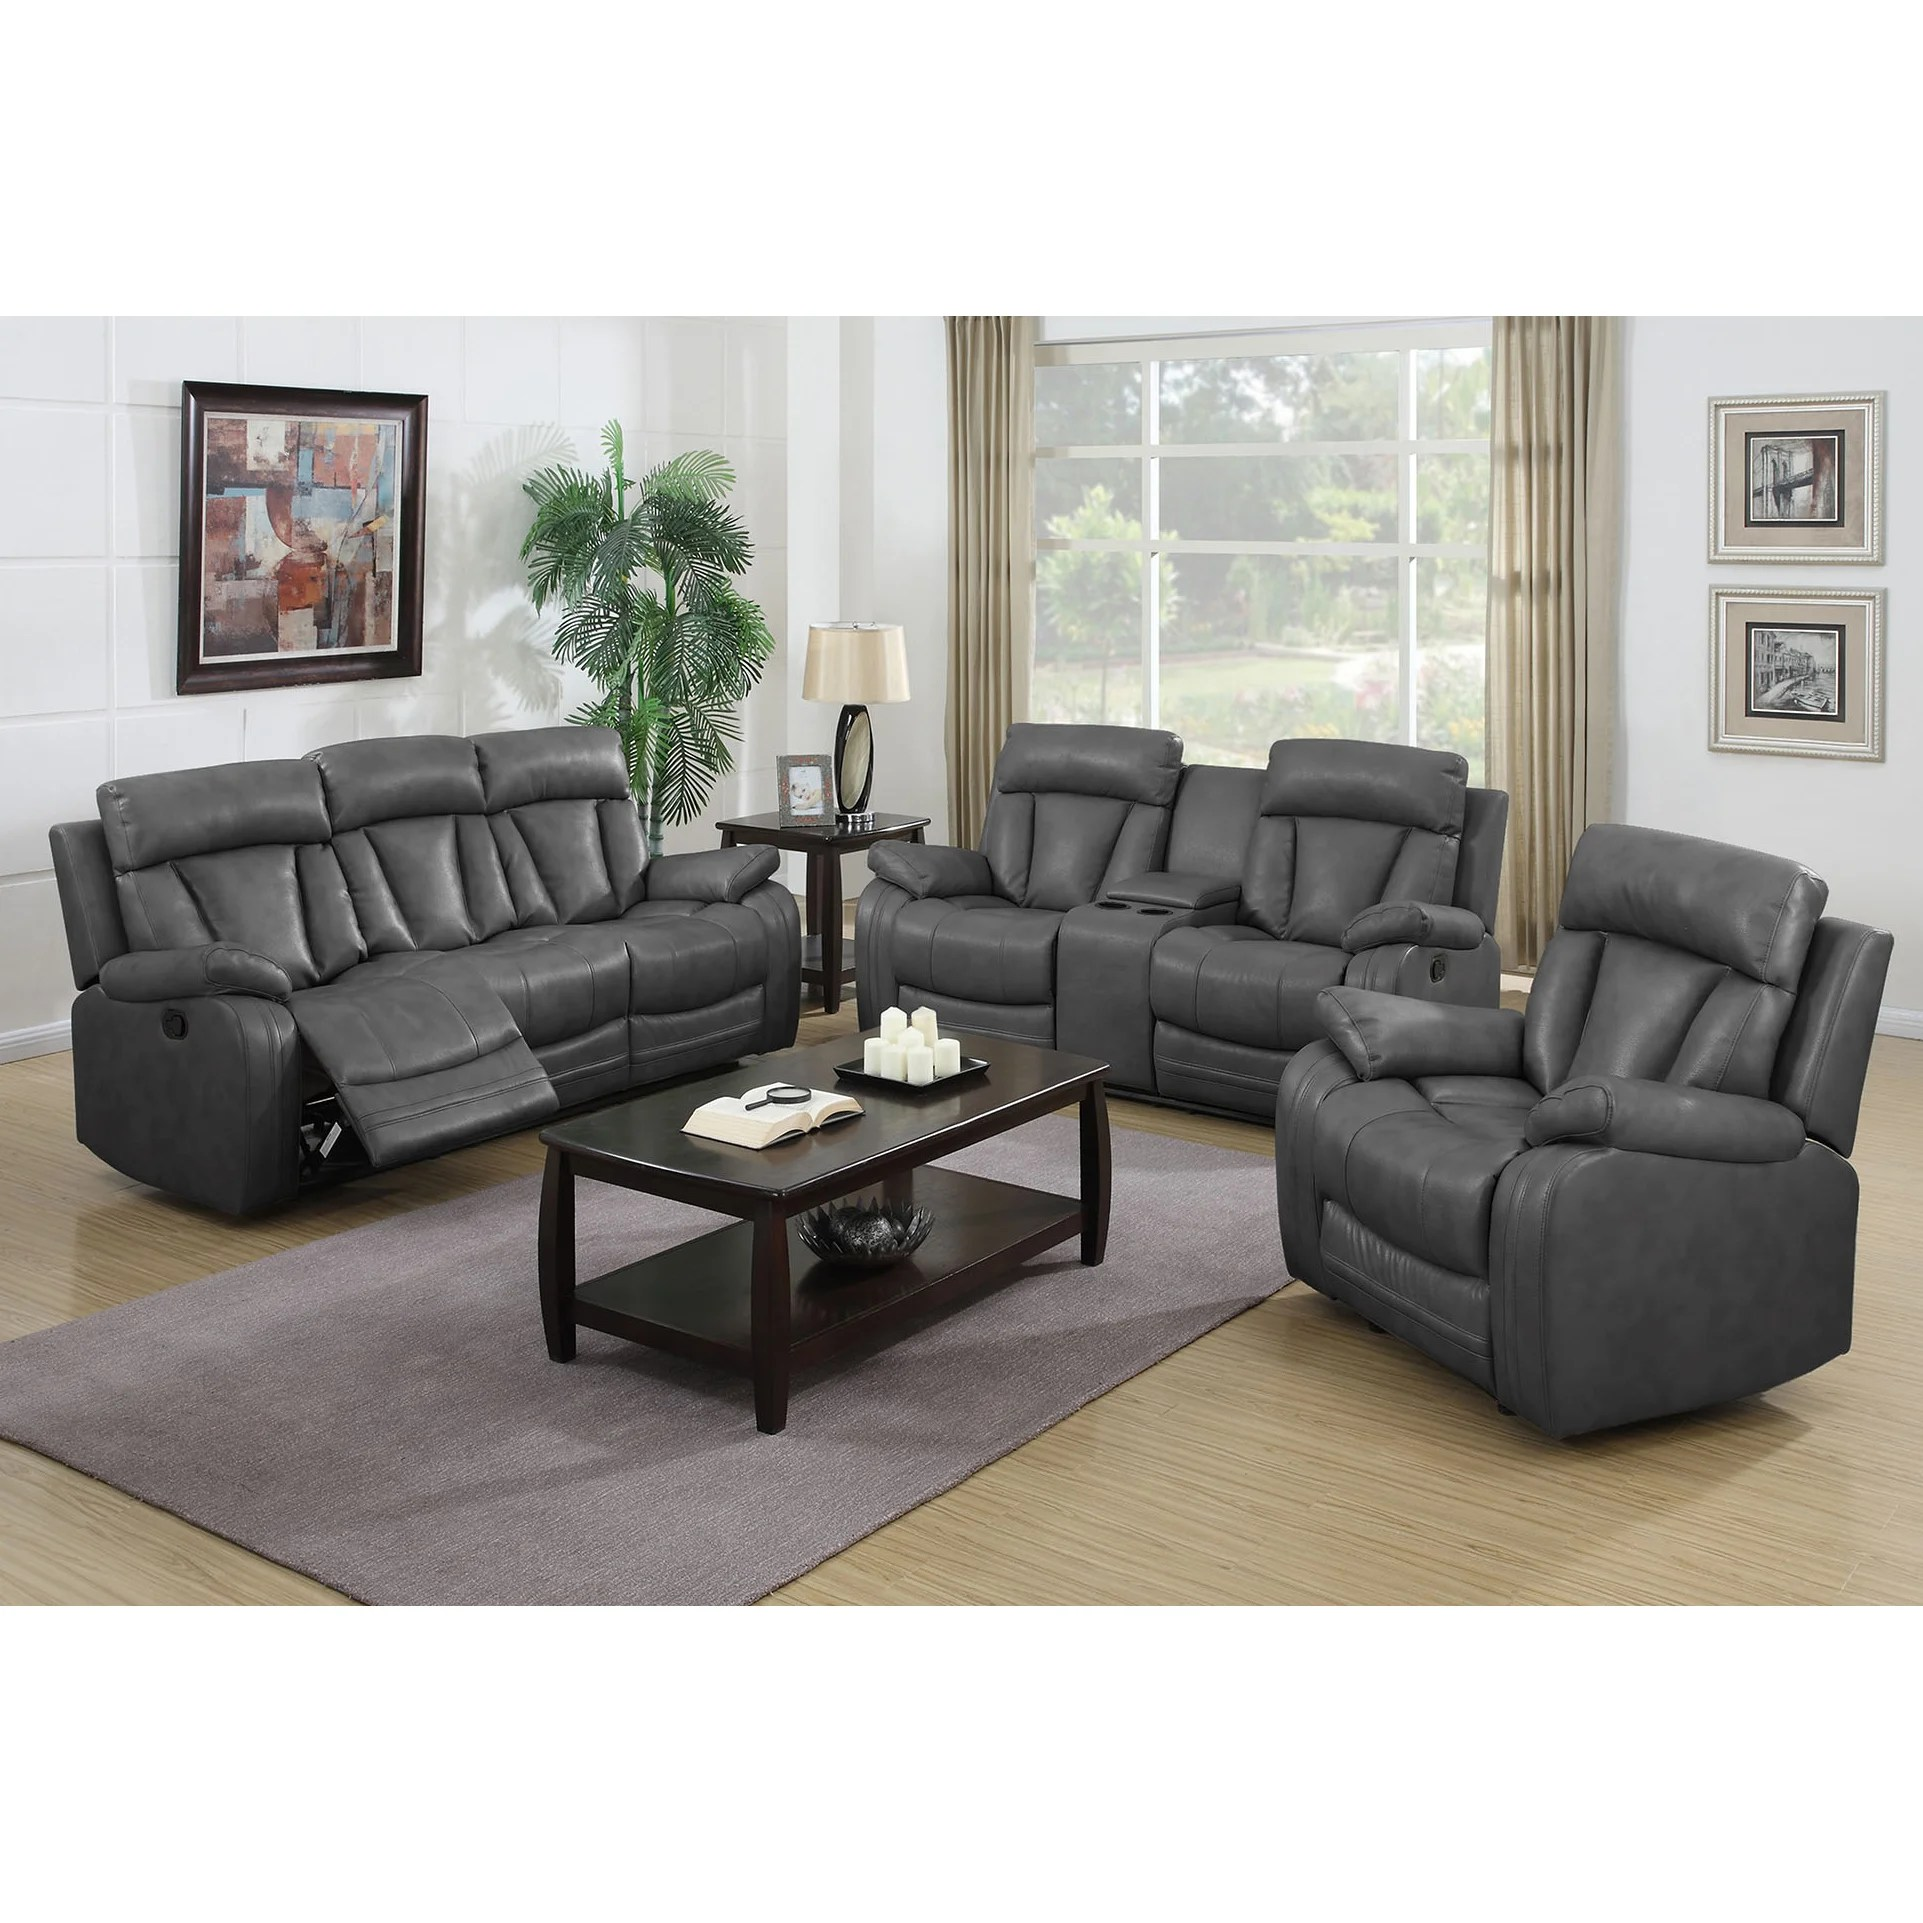 motion sofa set design pictures nathanielhome benjamin 3 piece wayfair